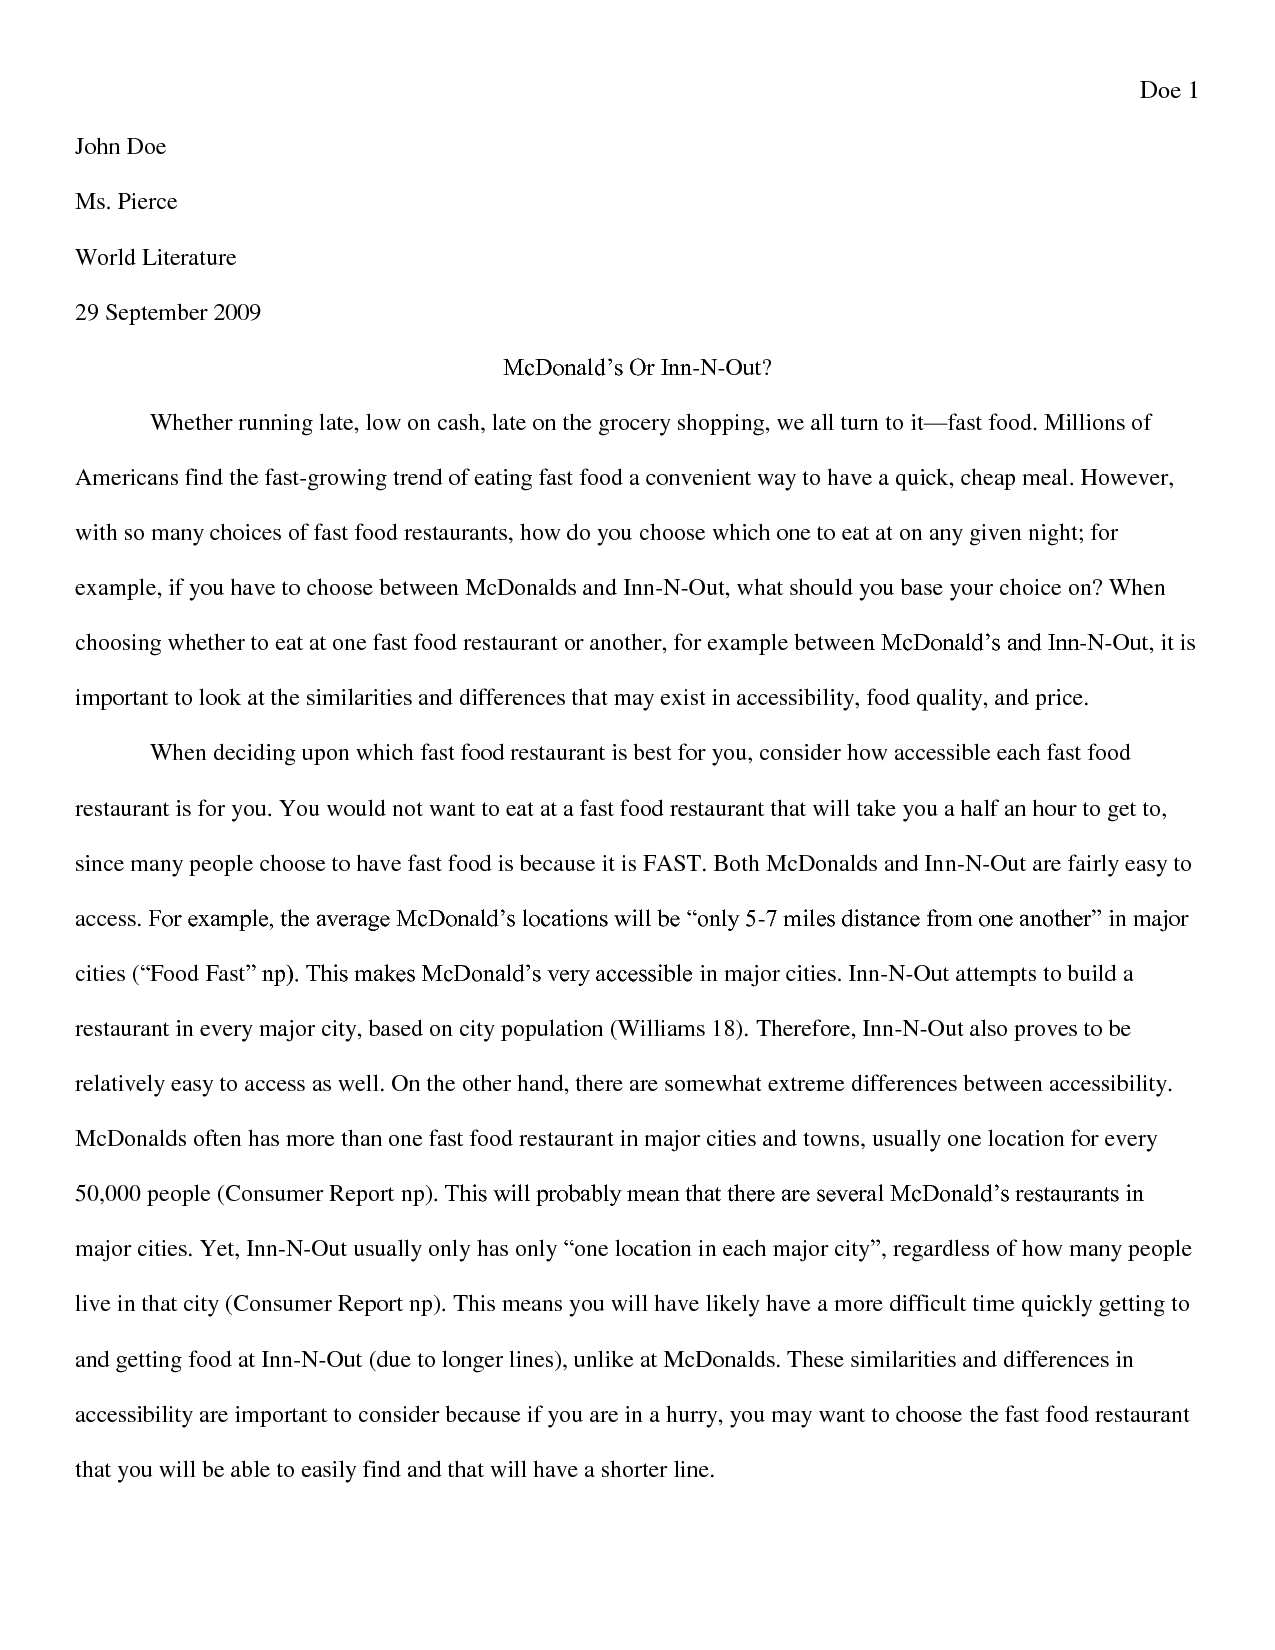 009 Essay Example High School Sample Papers 526023 Examples Unique For Personal Statement Essays 5 Paragraph Argumentative Tagalog Full